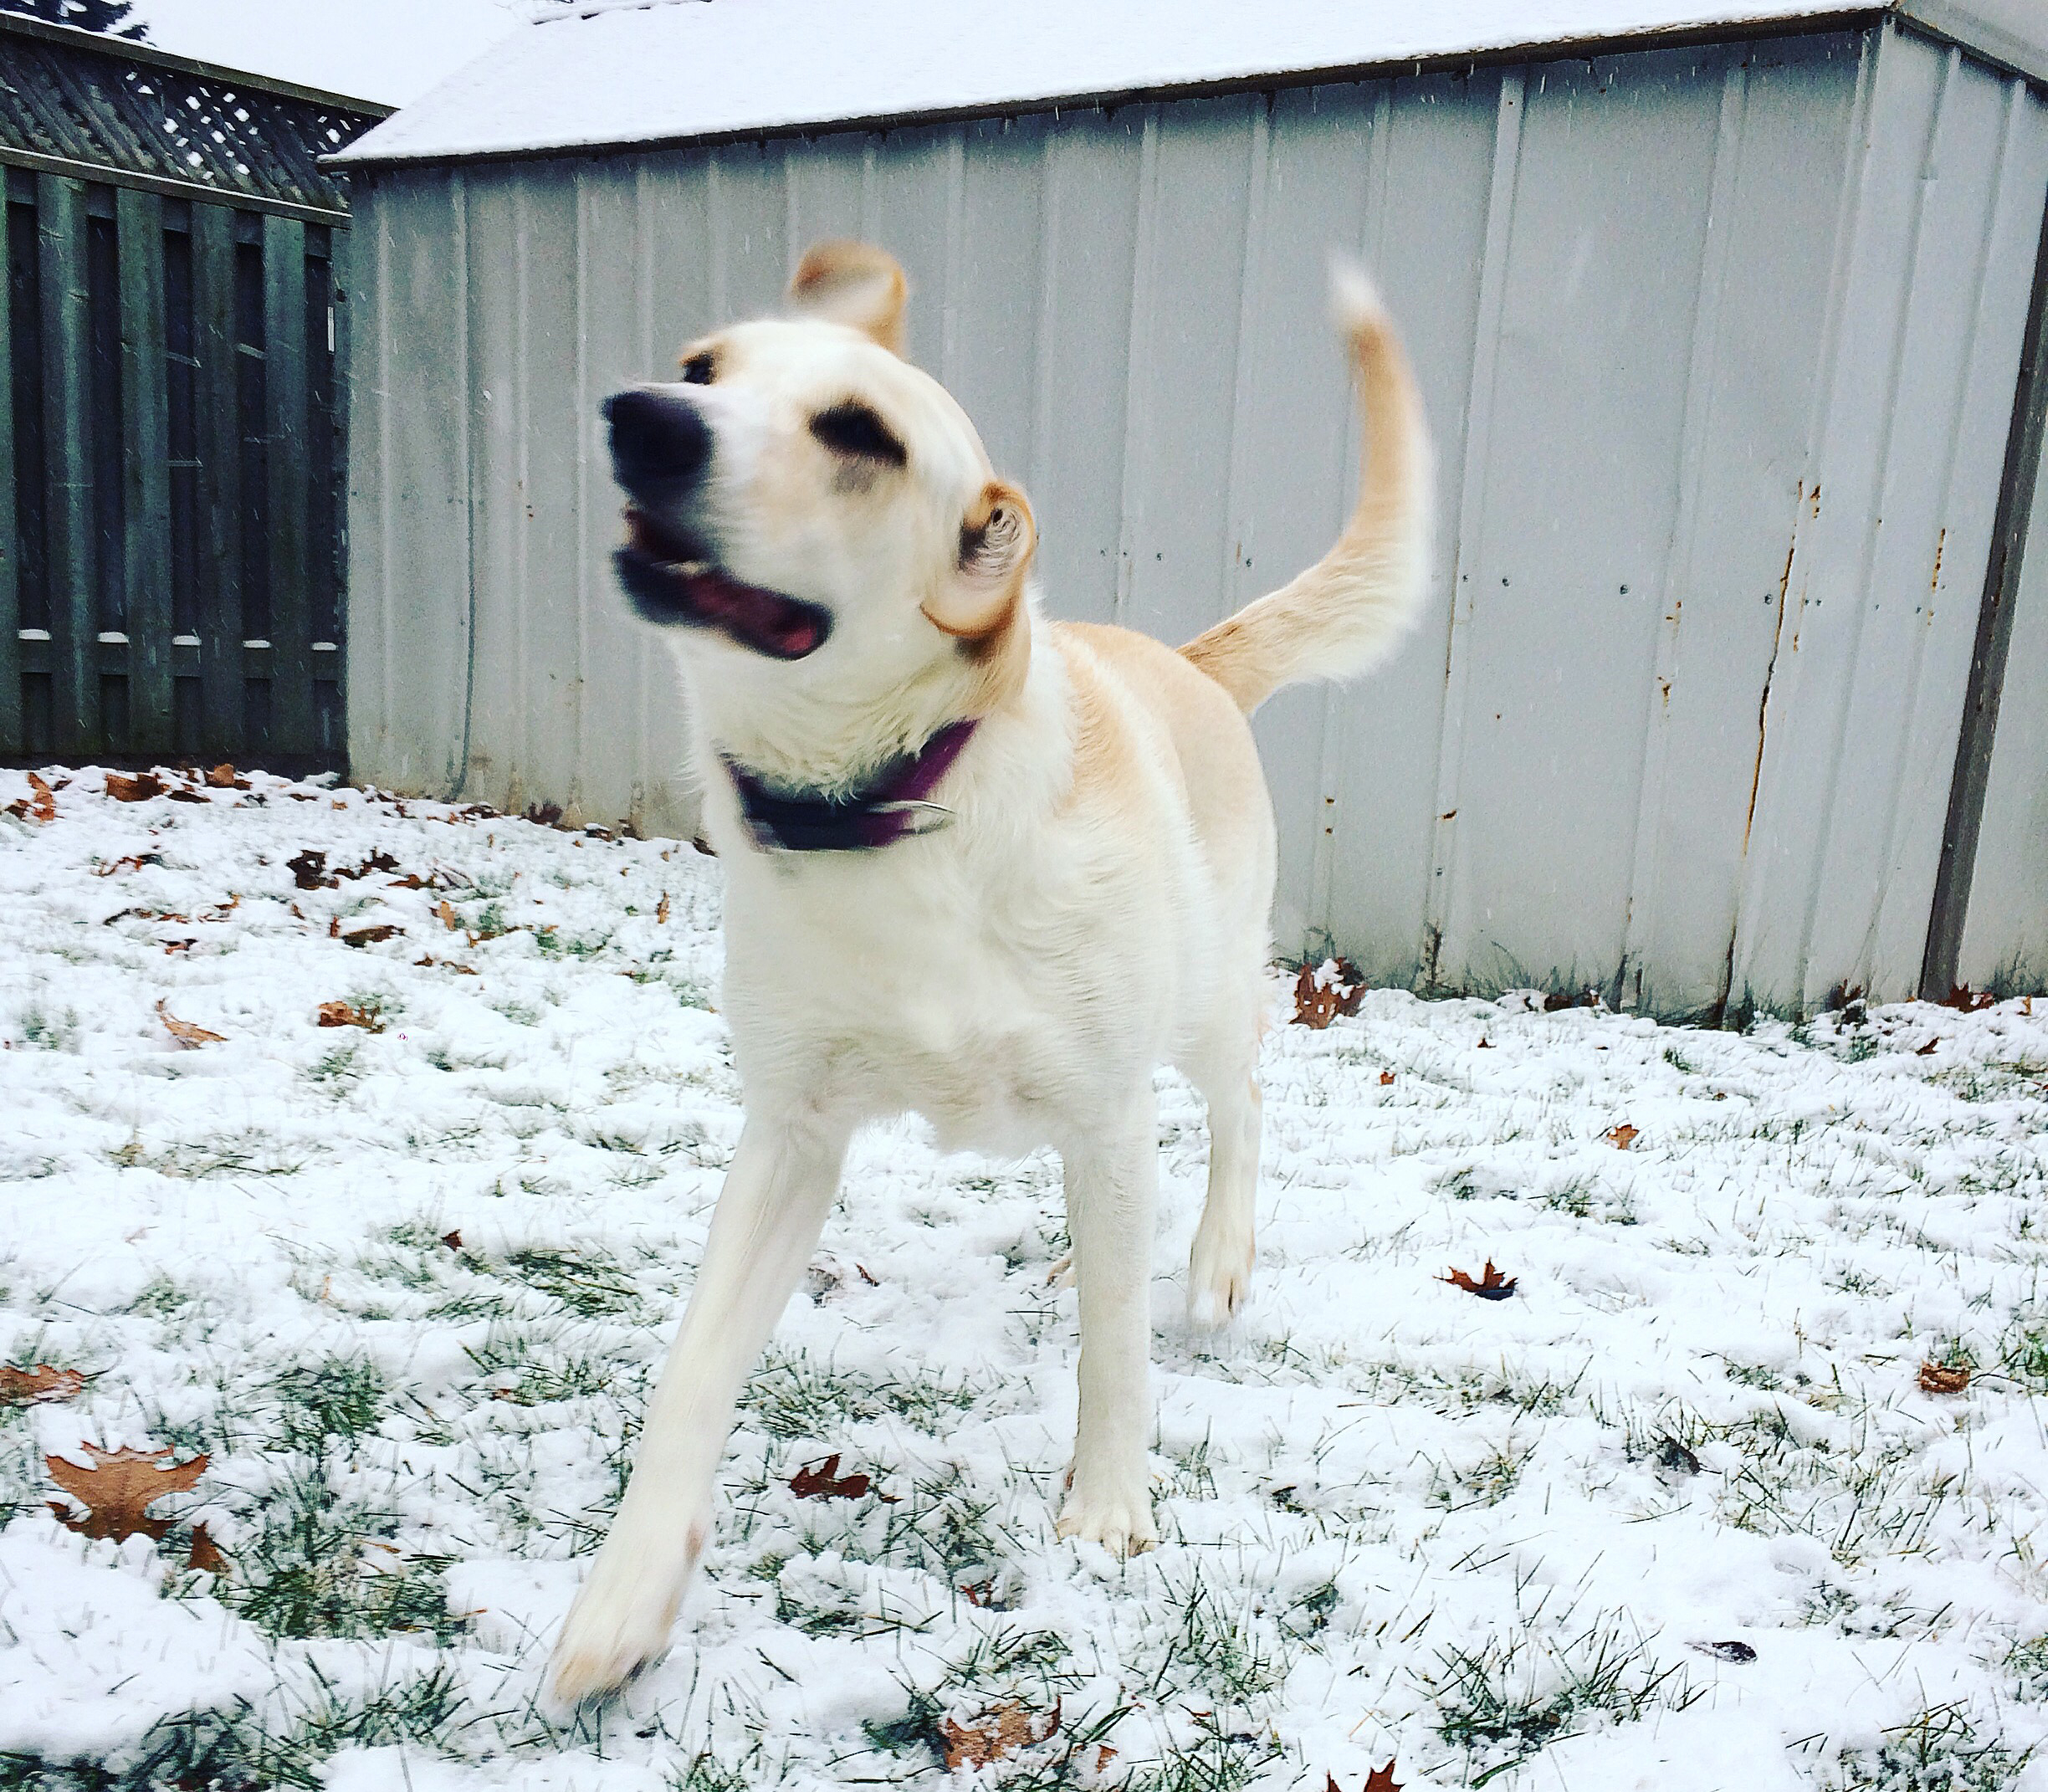 snow maintenance for dog safety